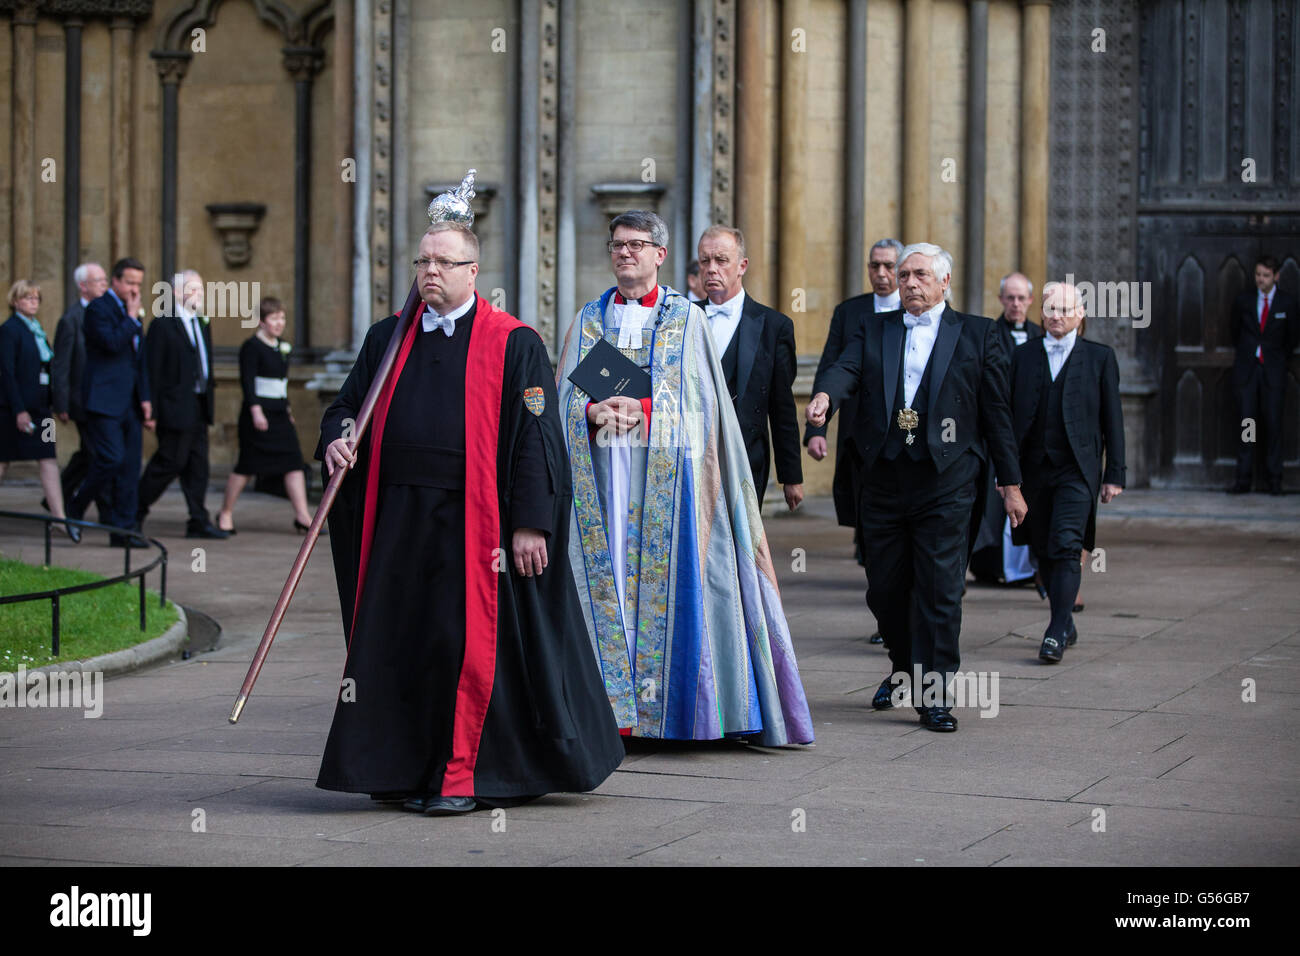 London, UK. 20th June, 2016. Canon Tremlett (c), Rector of St Margaret's Church, and Senior Verger Nigel Harris - Stock Image